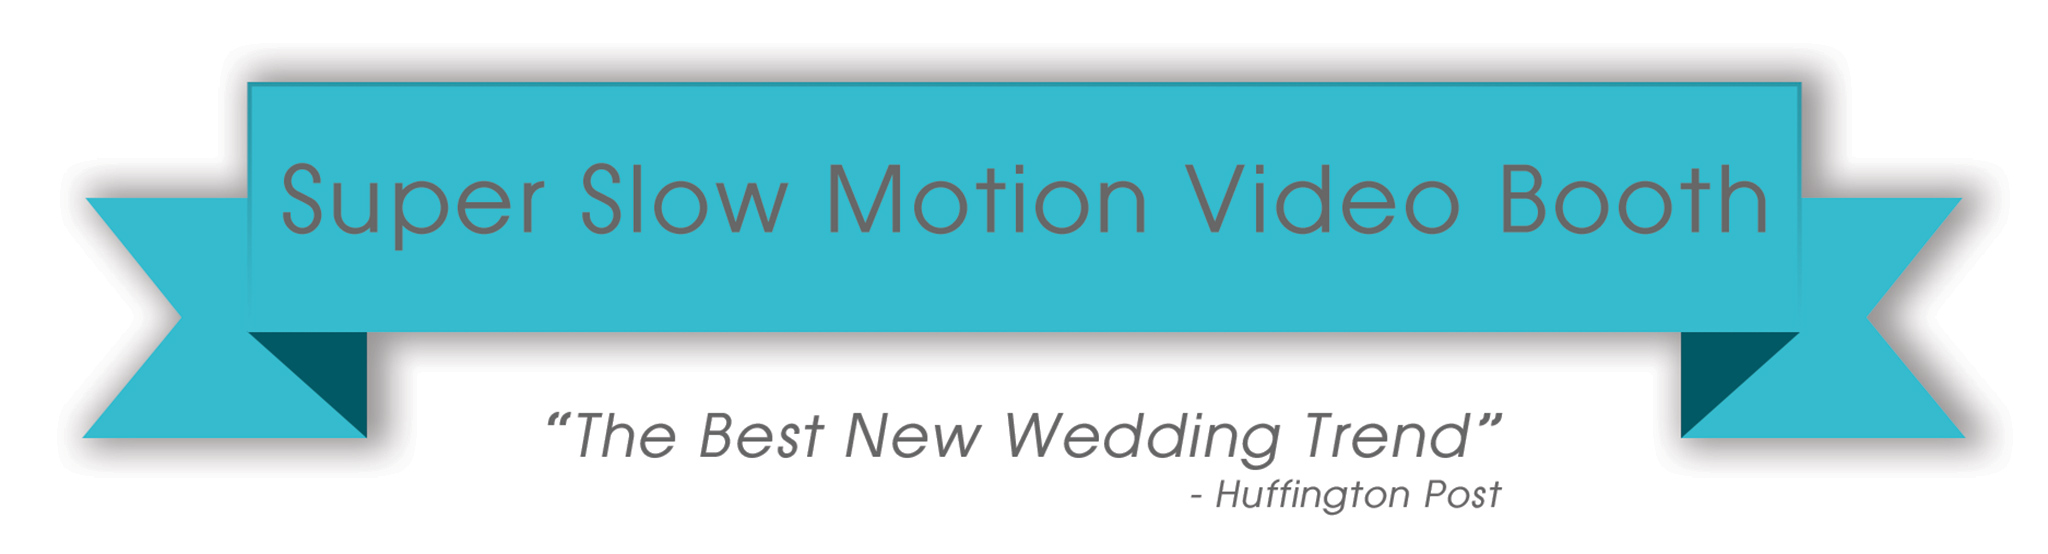 Super Slow Motion Video Booth - The Best New Wedding Trend